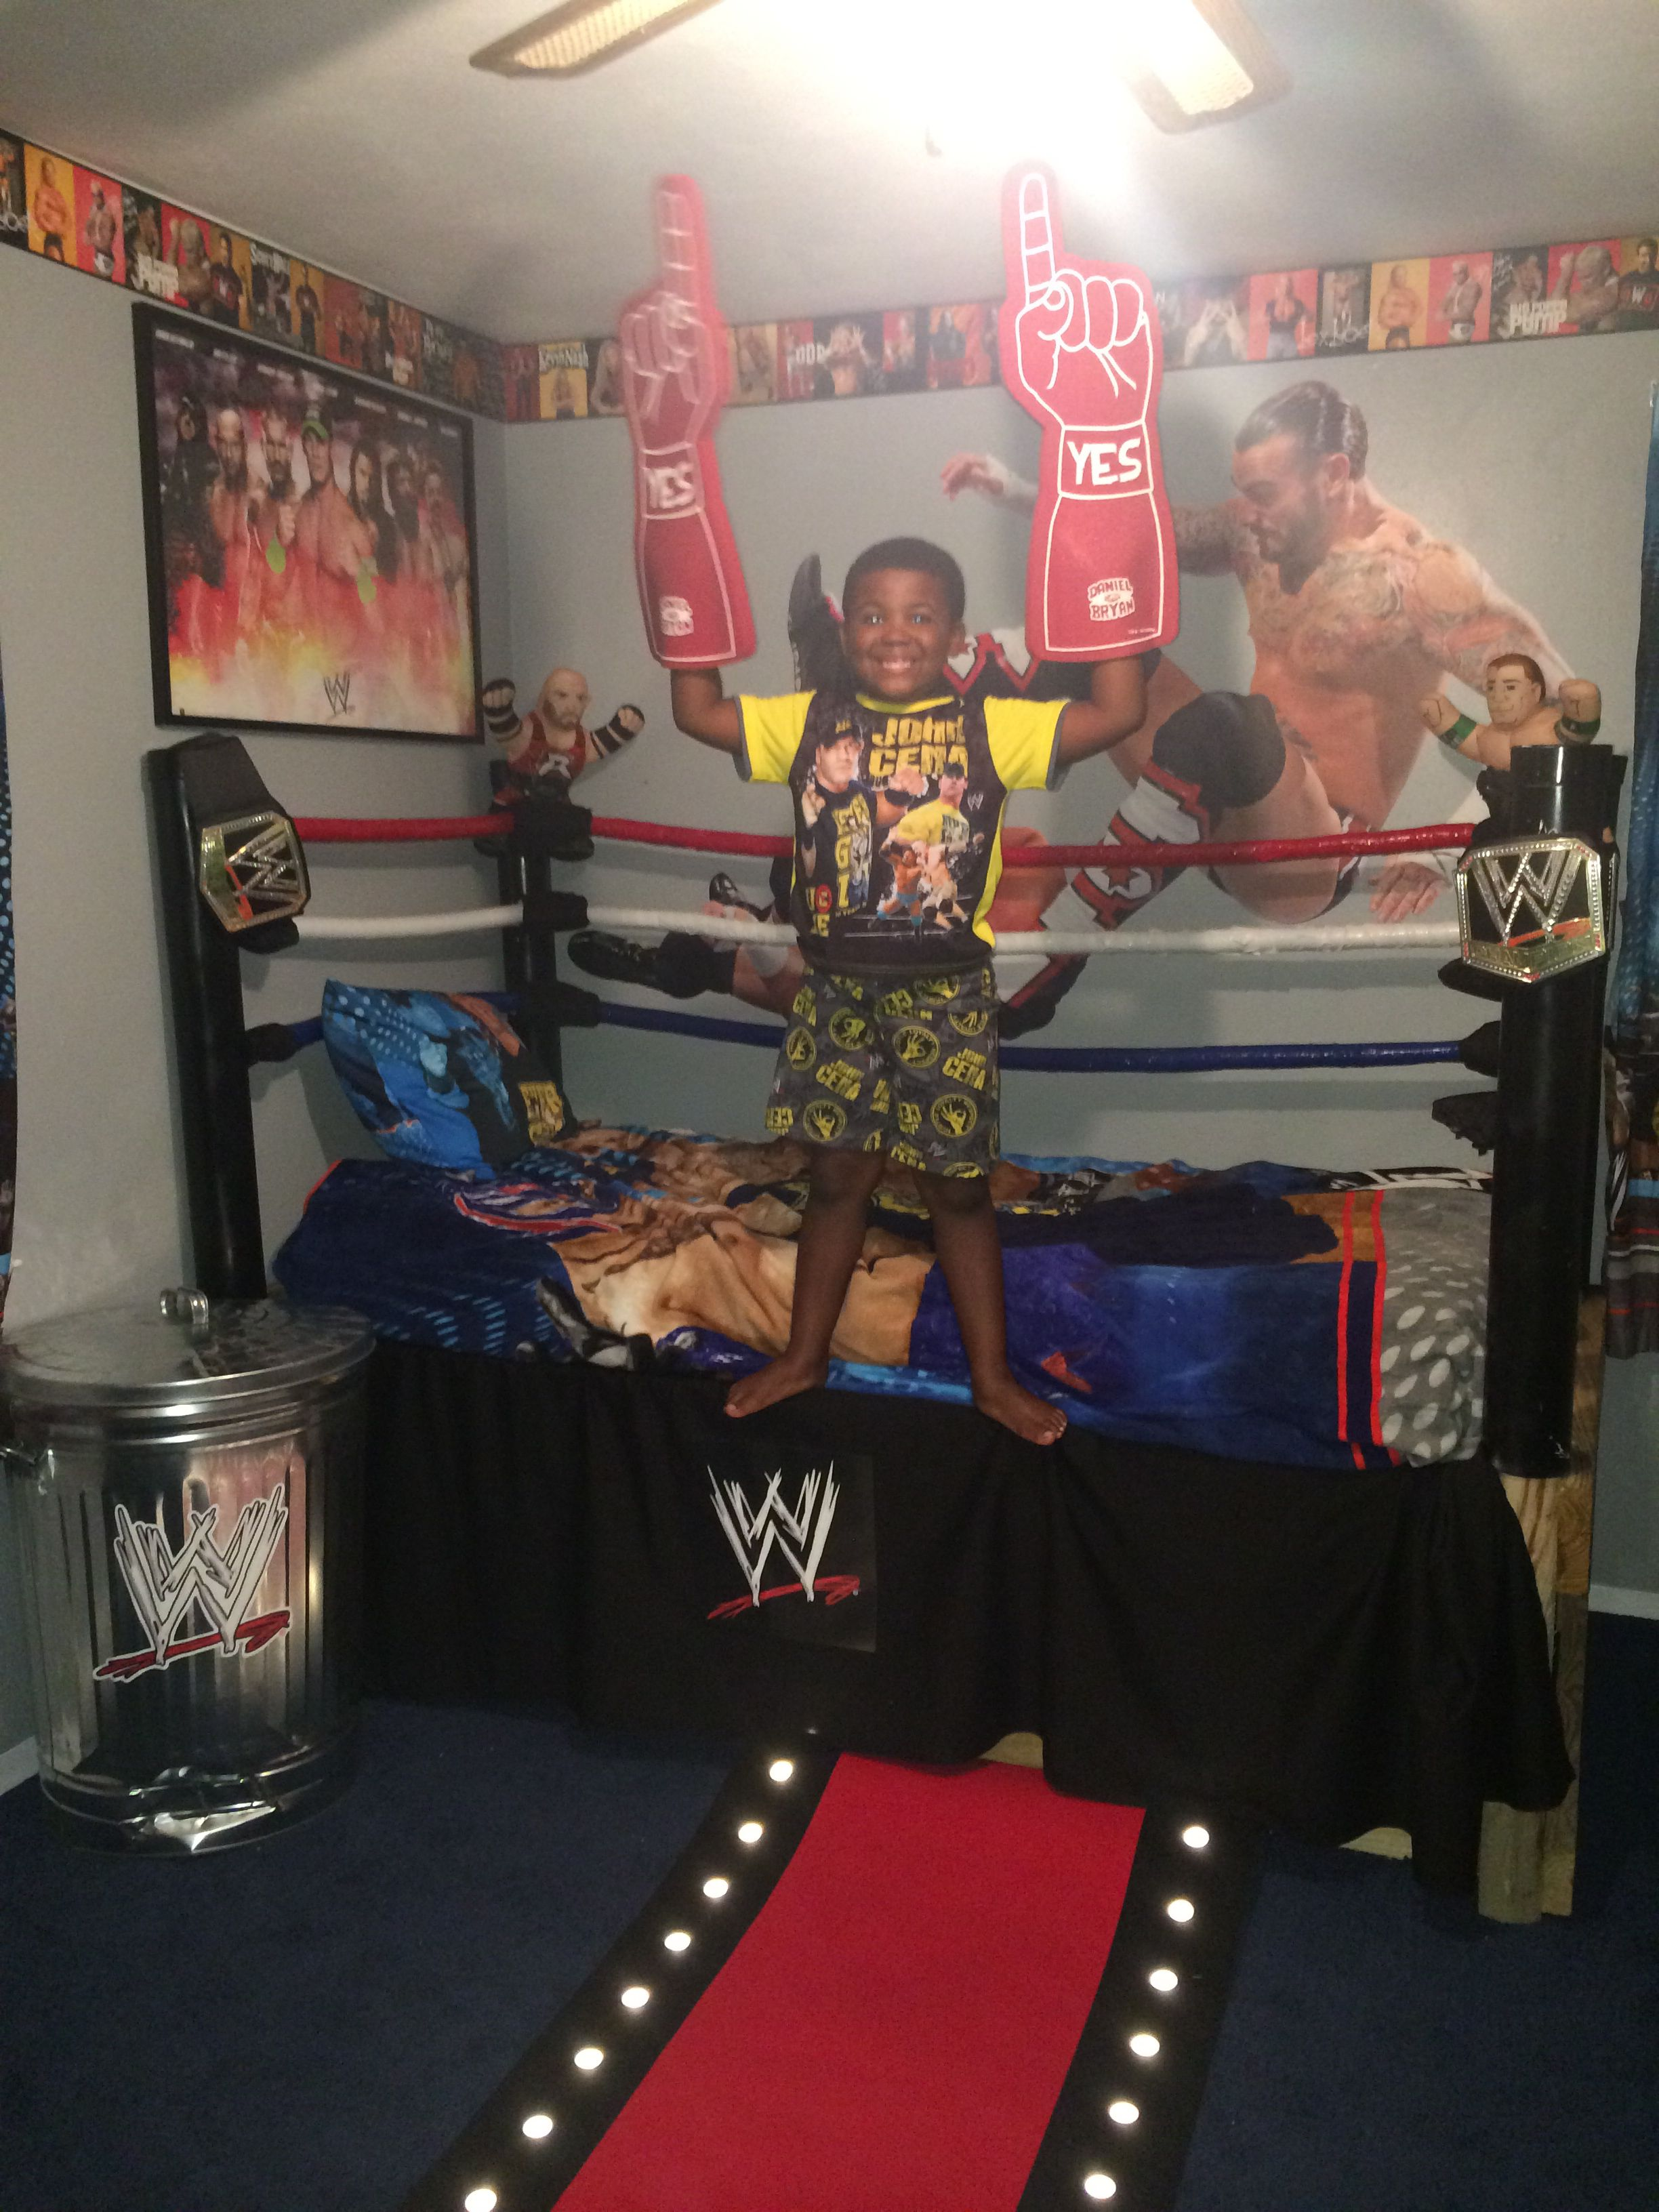 wwe custom bedroom love the idea of decorating a steel